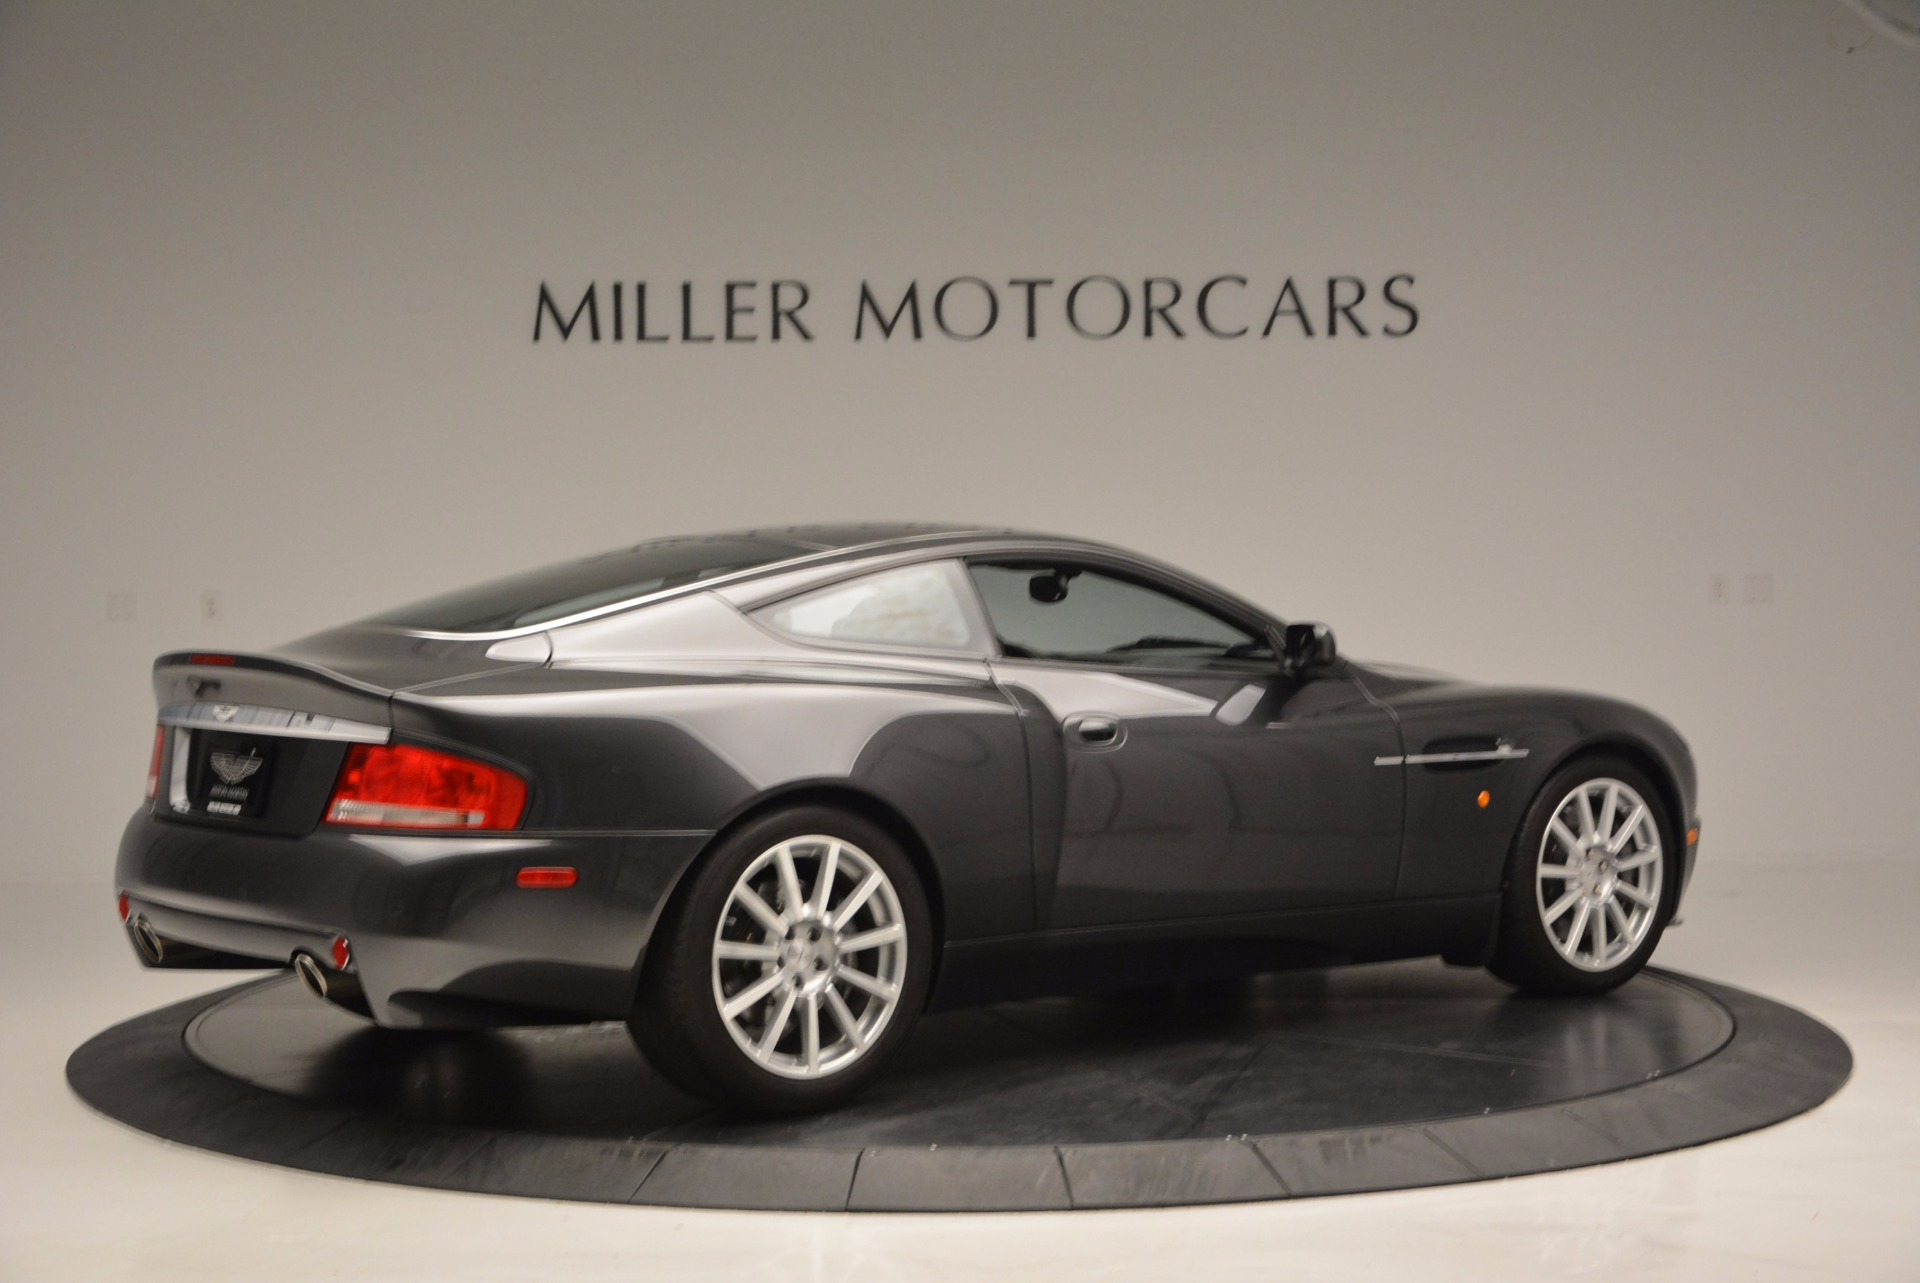 Used 2005 Aston Martin V12 Vanquish S For Sale In Greenwich, CT. Alfa Romeo of Greenwich, 7097 645_p8